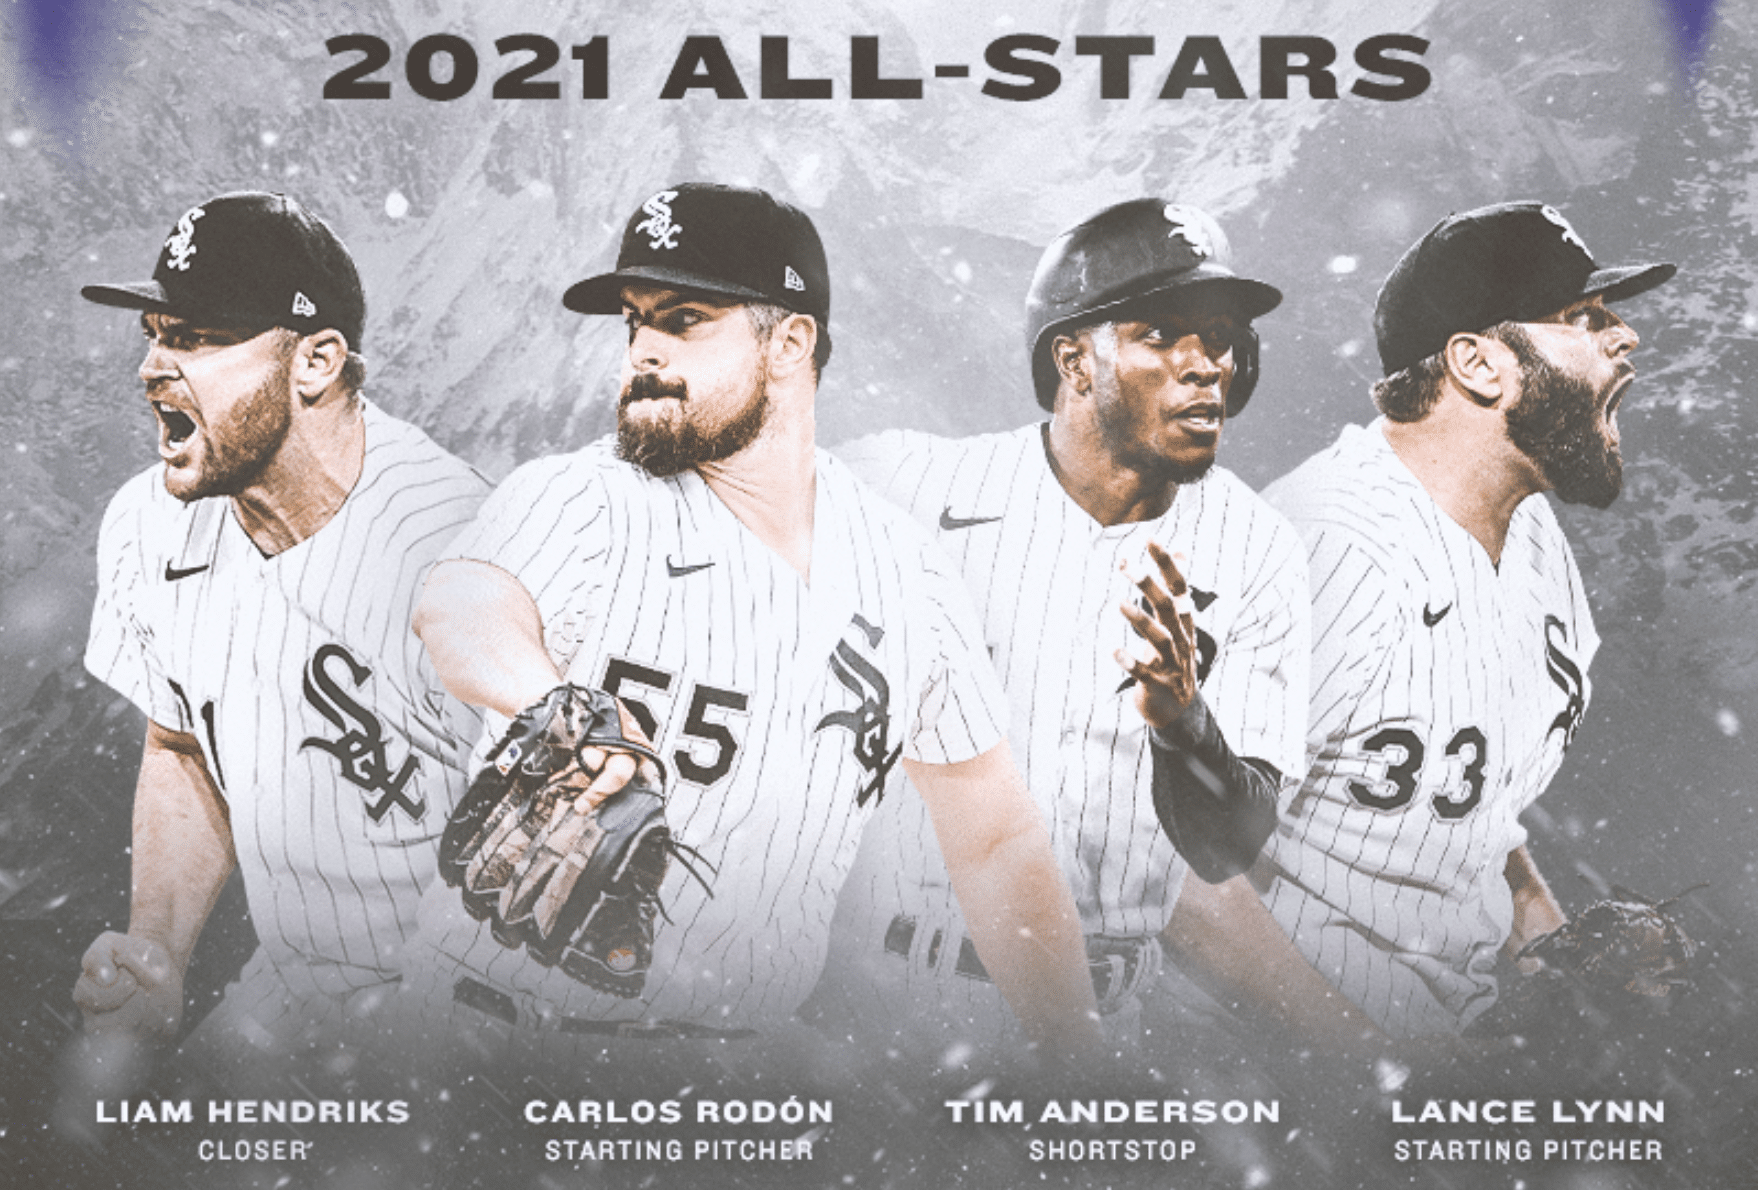 Tim Anderson All-Star